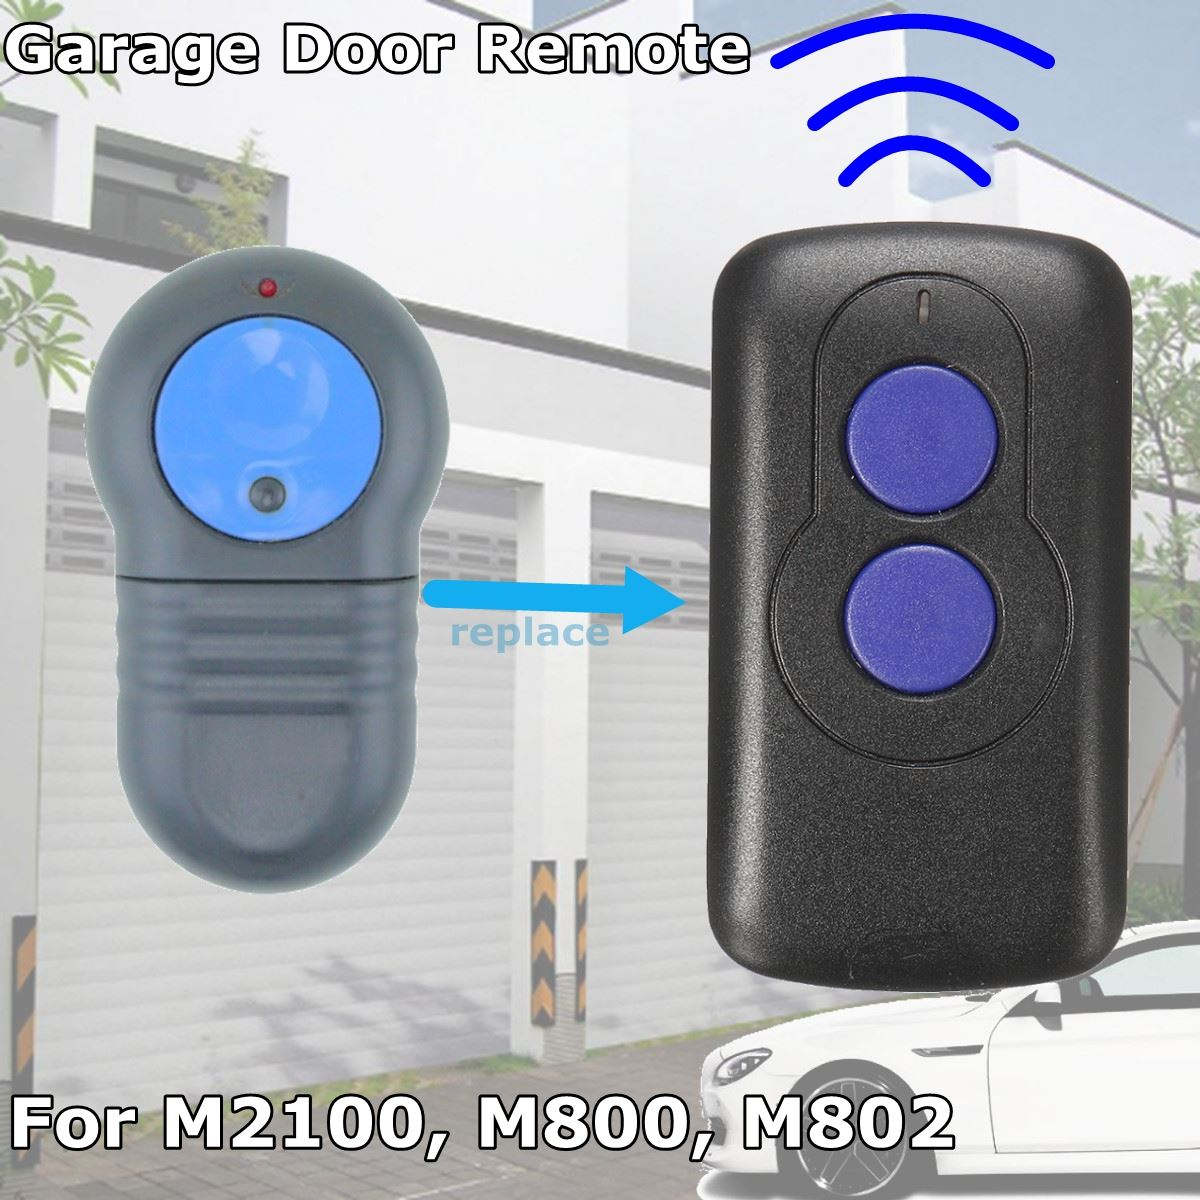 40.685Mhz Replacement Garage Door Gate Remote Control Transmitter Electric Duplicator For Merlin M802